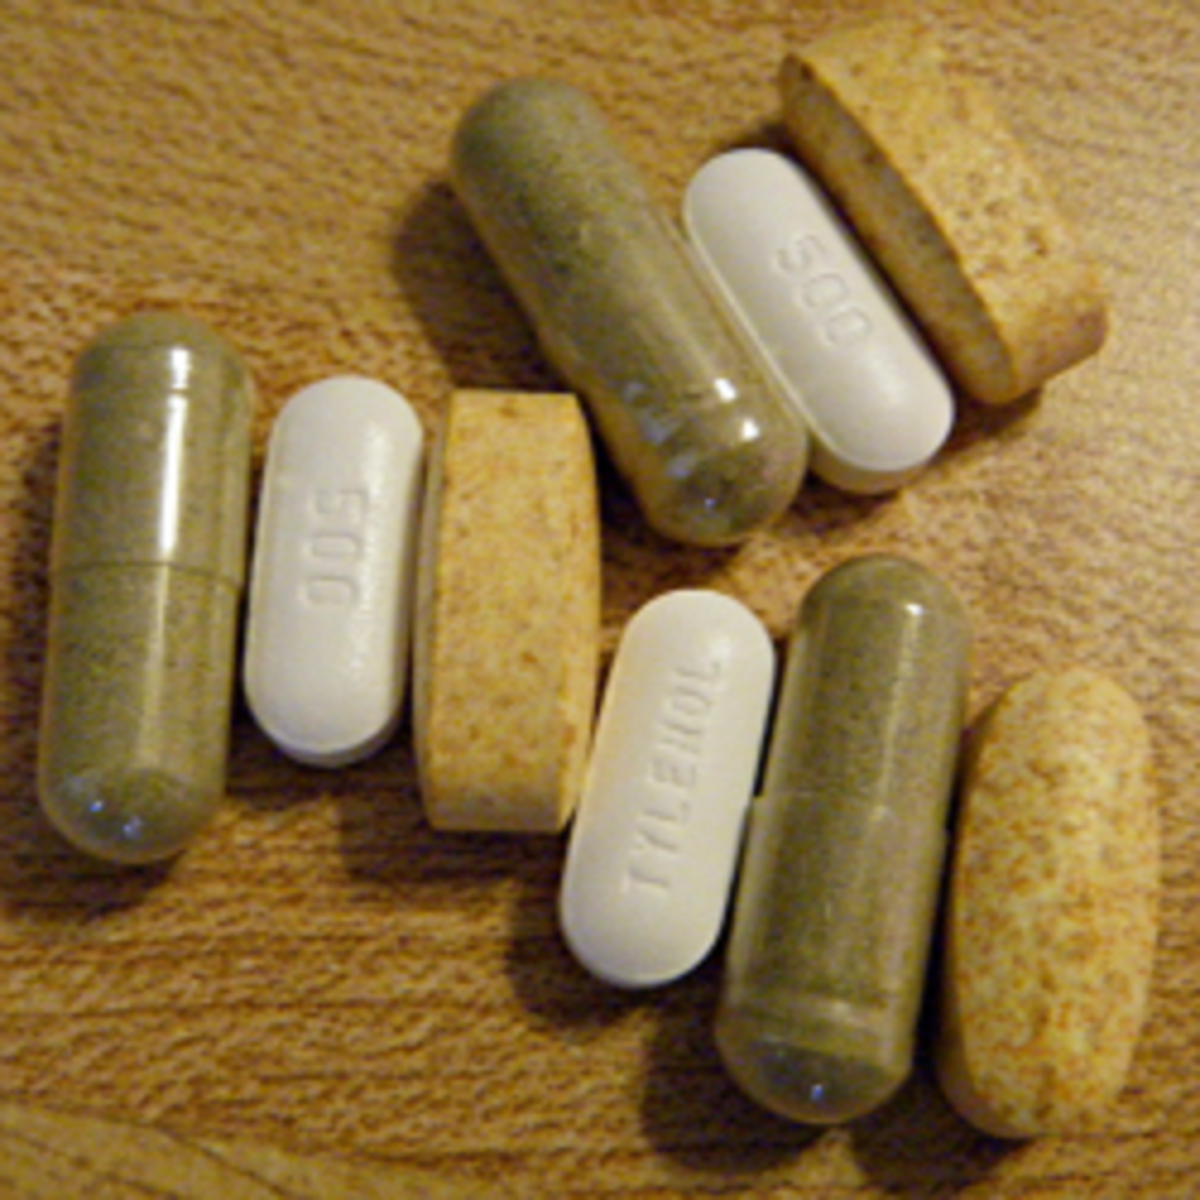 fear-of-swallowing-pills